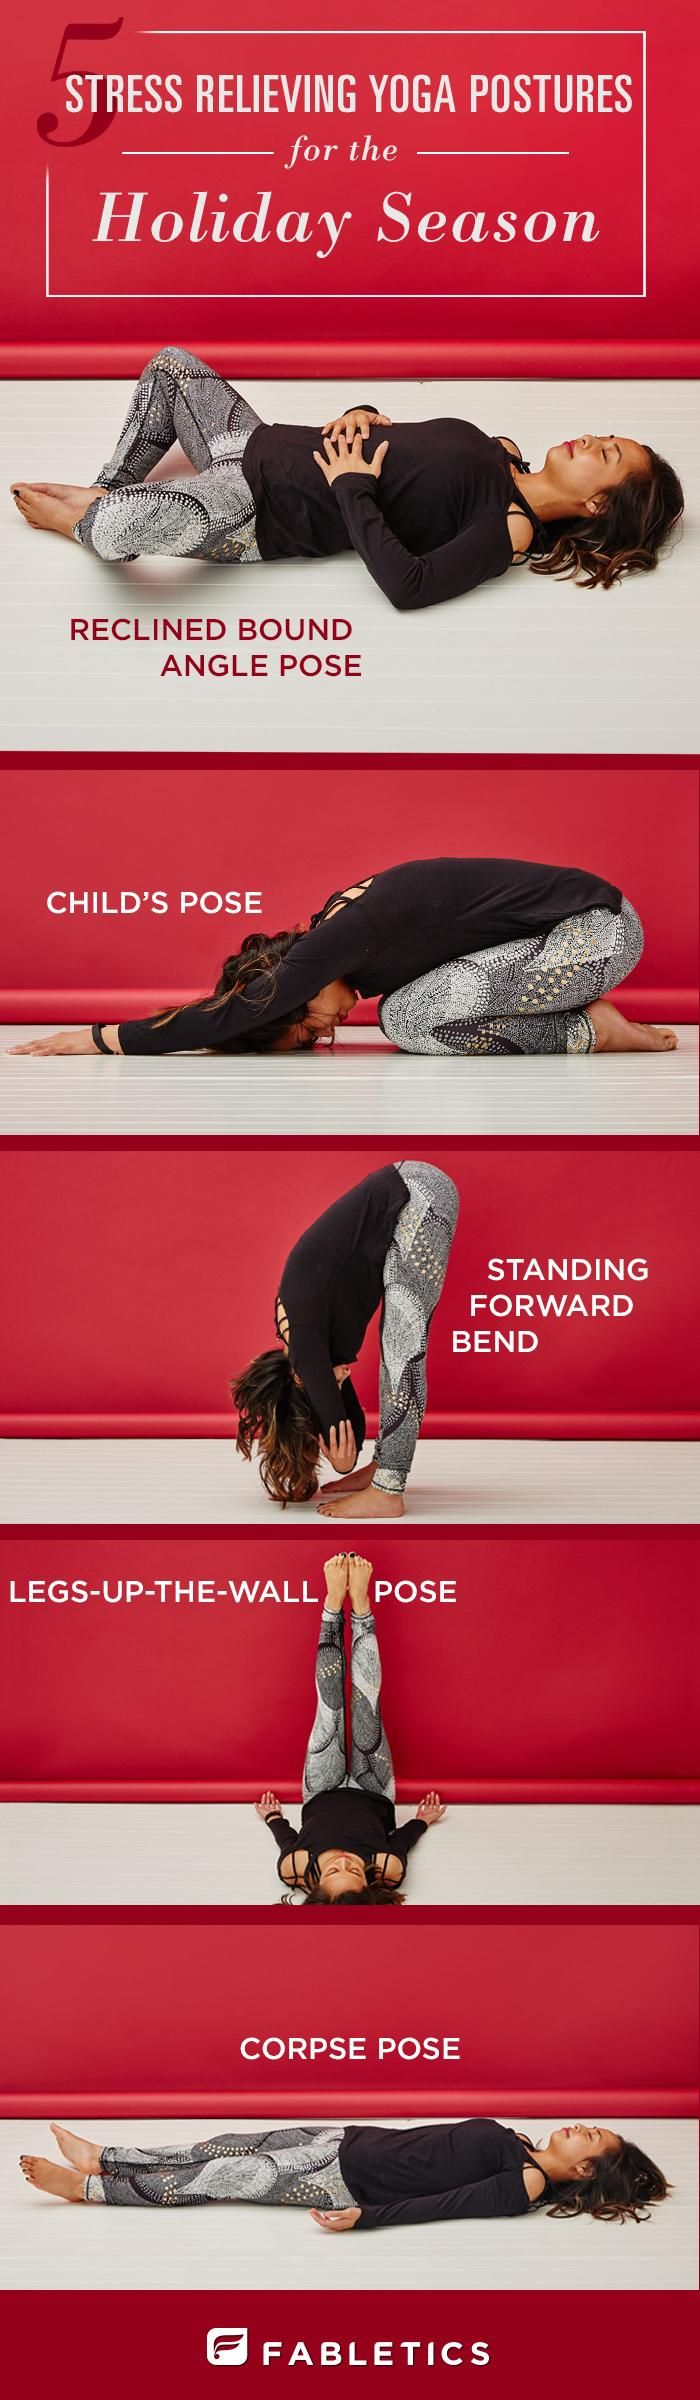 Christmas pressures?? Stop stressing! Try these 5 yoga poses for a stress-free holiday. In other words - take 5 or just STOP, relax & re-group. Ohh & don't forget to breathe!!